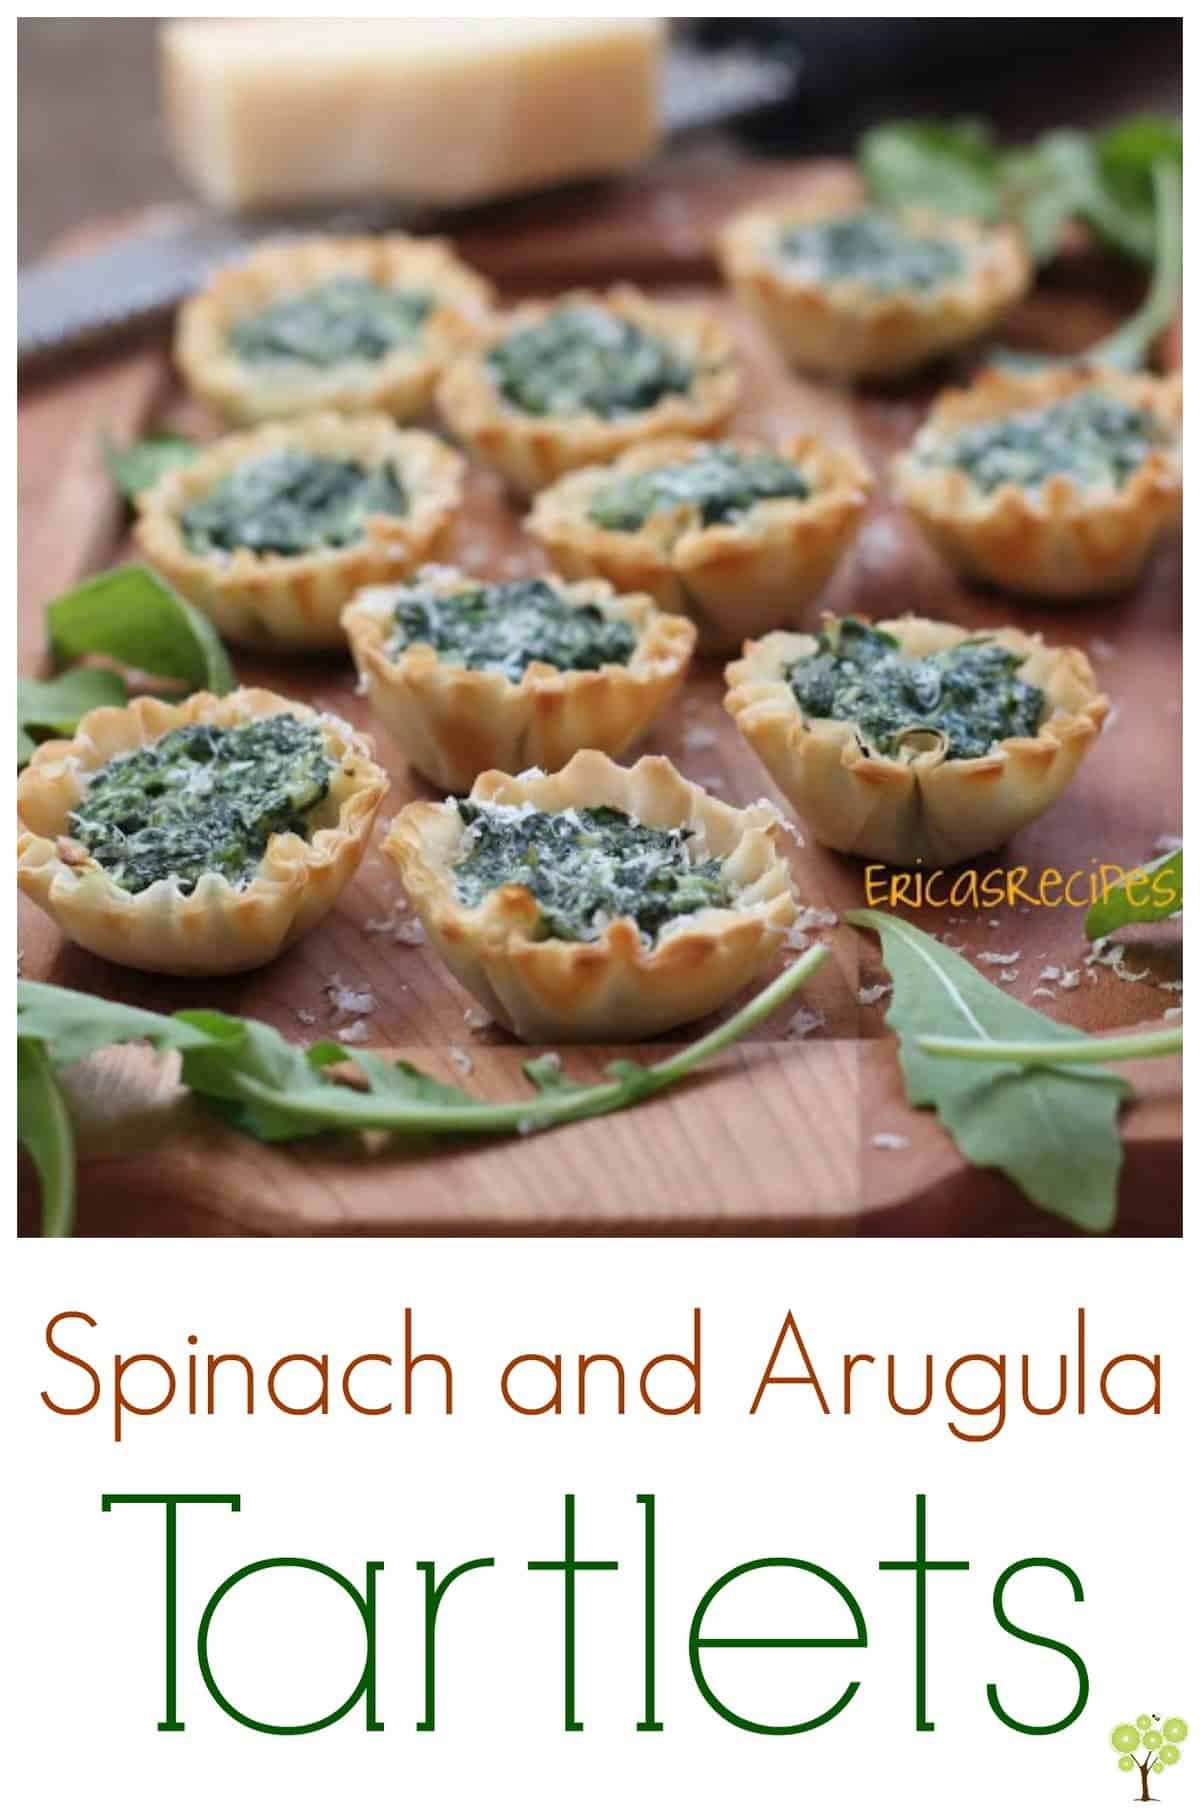 Spinach and Arugula Tartlets #partyfood #recipe #appetizer #vegetarian